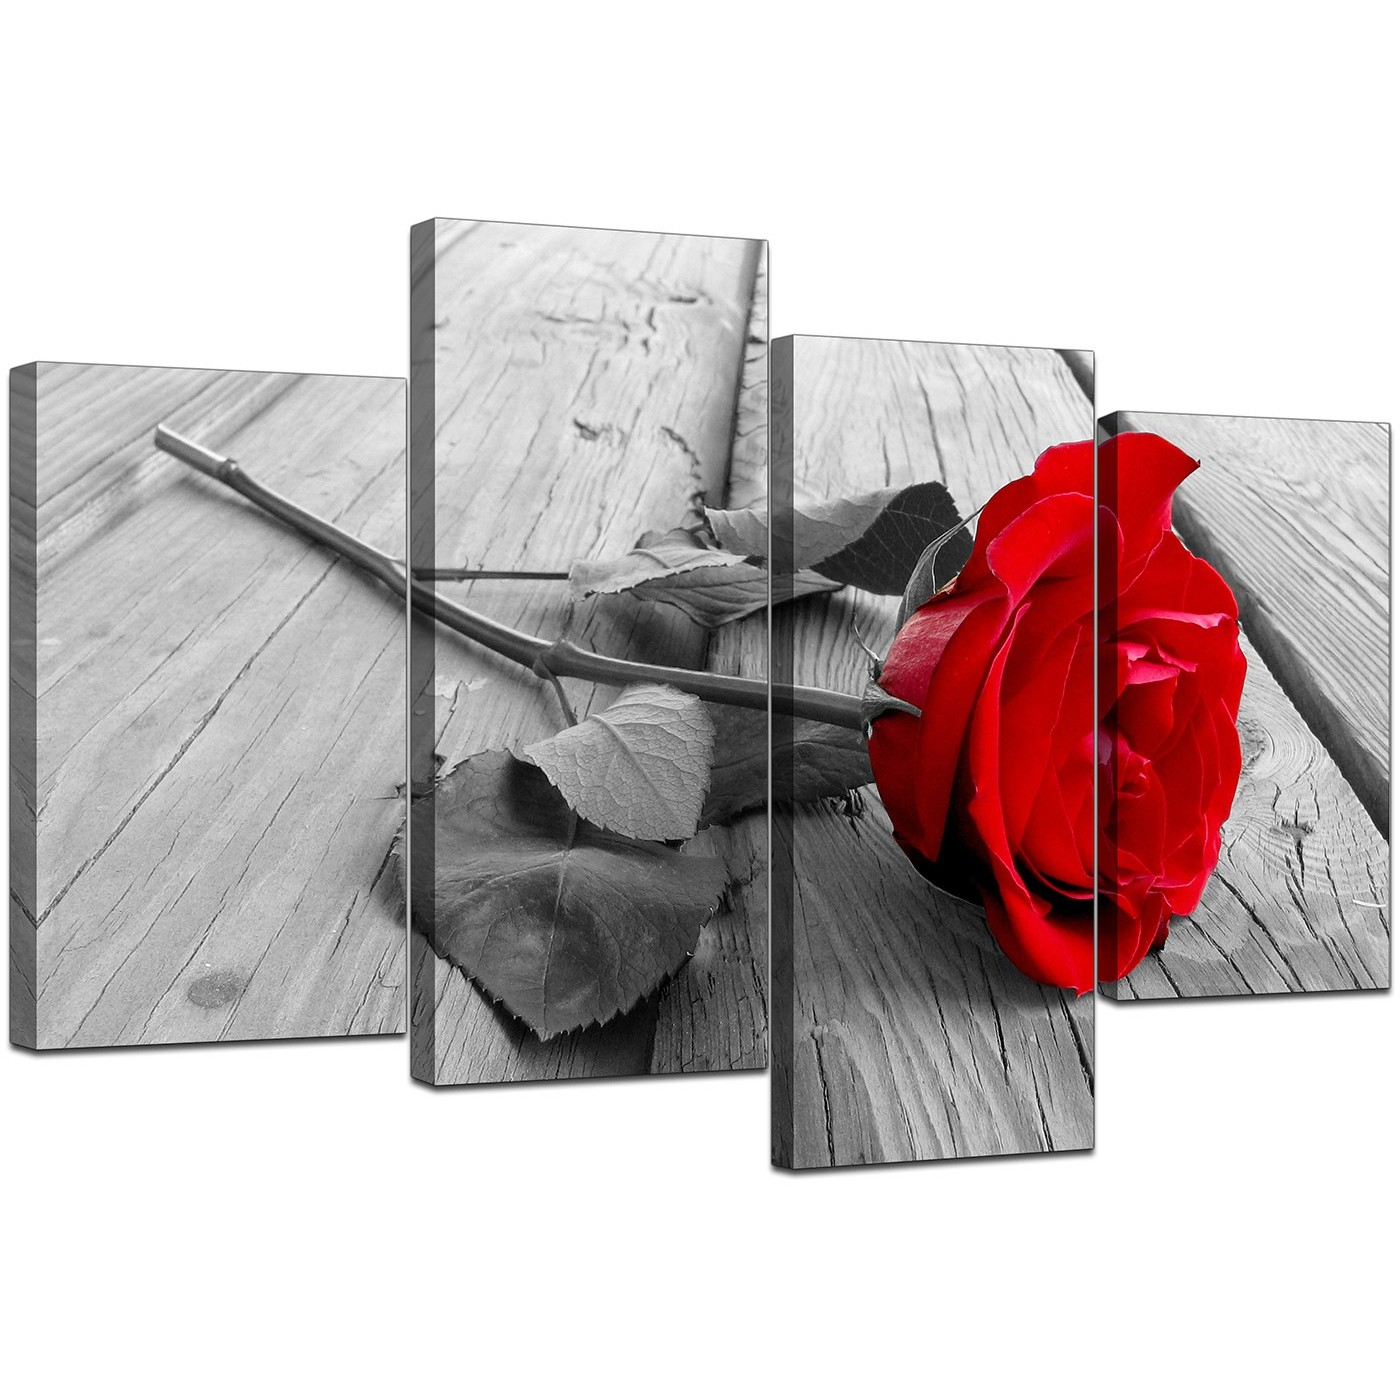 Floral Canvas Wall Art In Red Black And White For Living Room